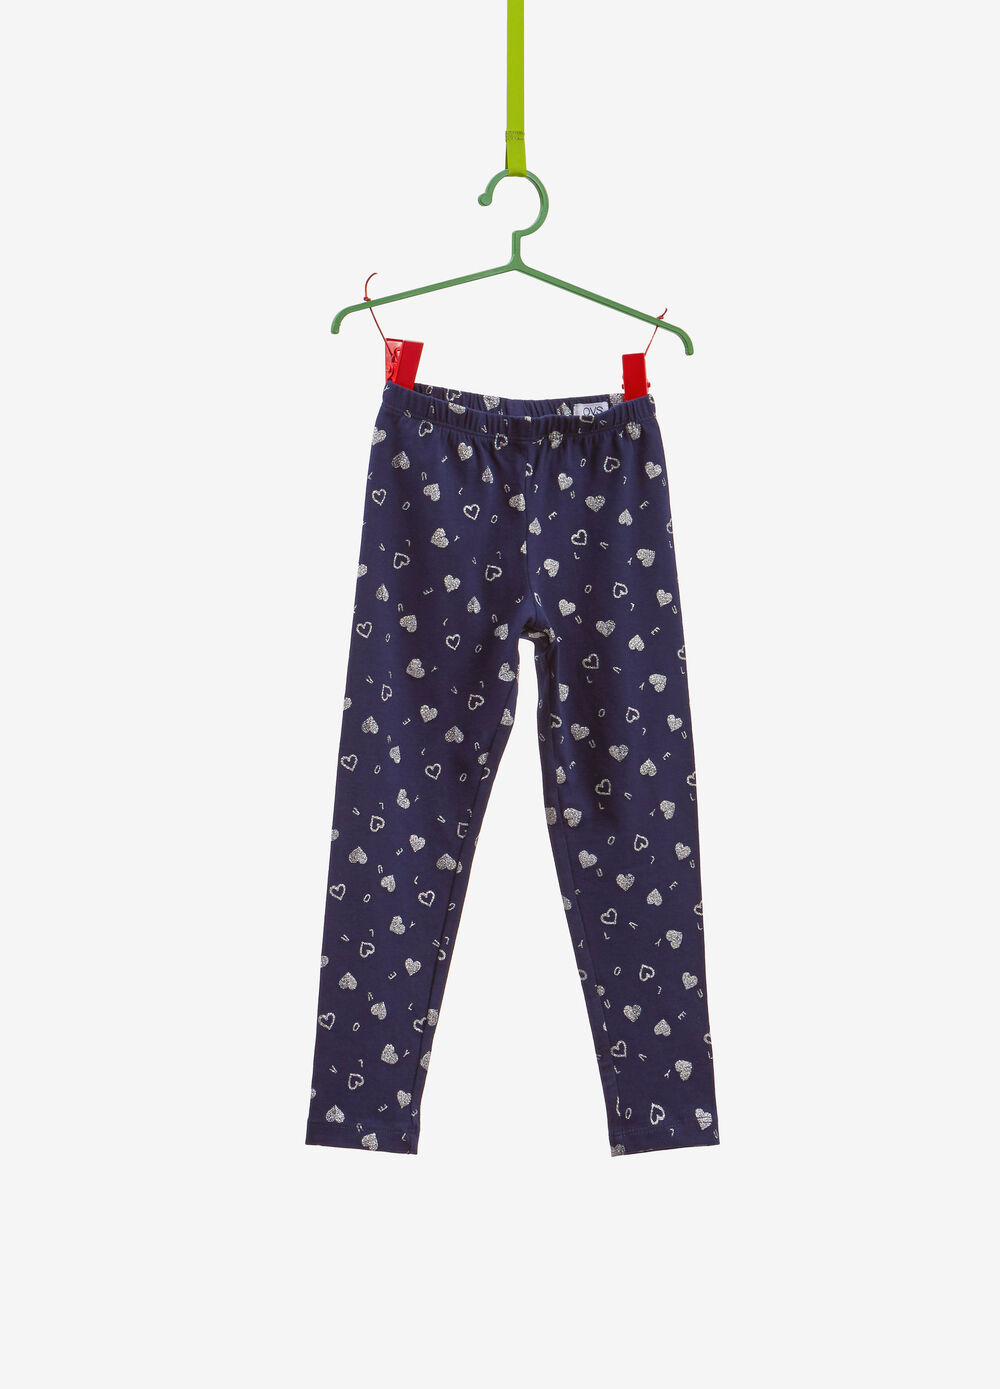 Stretch cotton leggings with glitter pattern